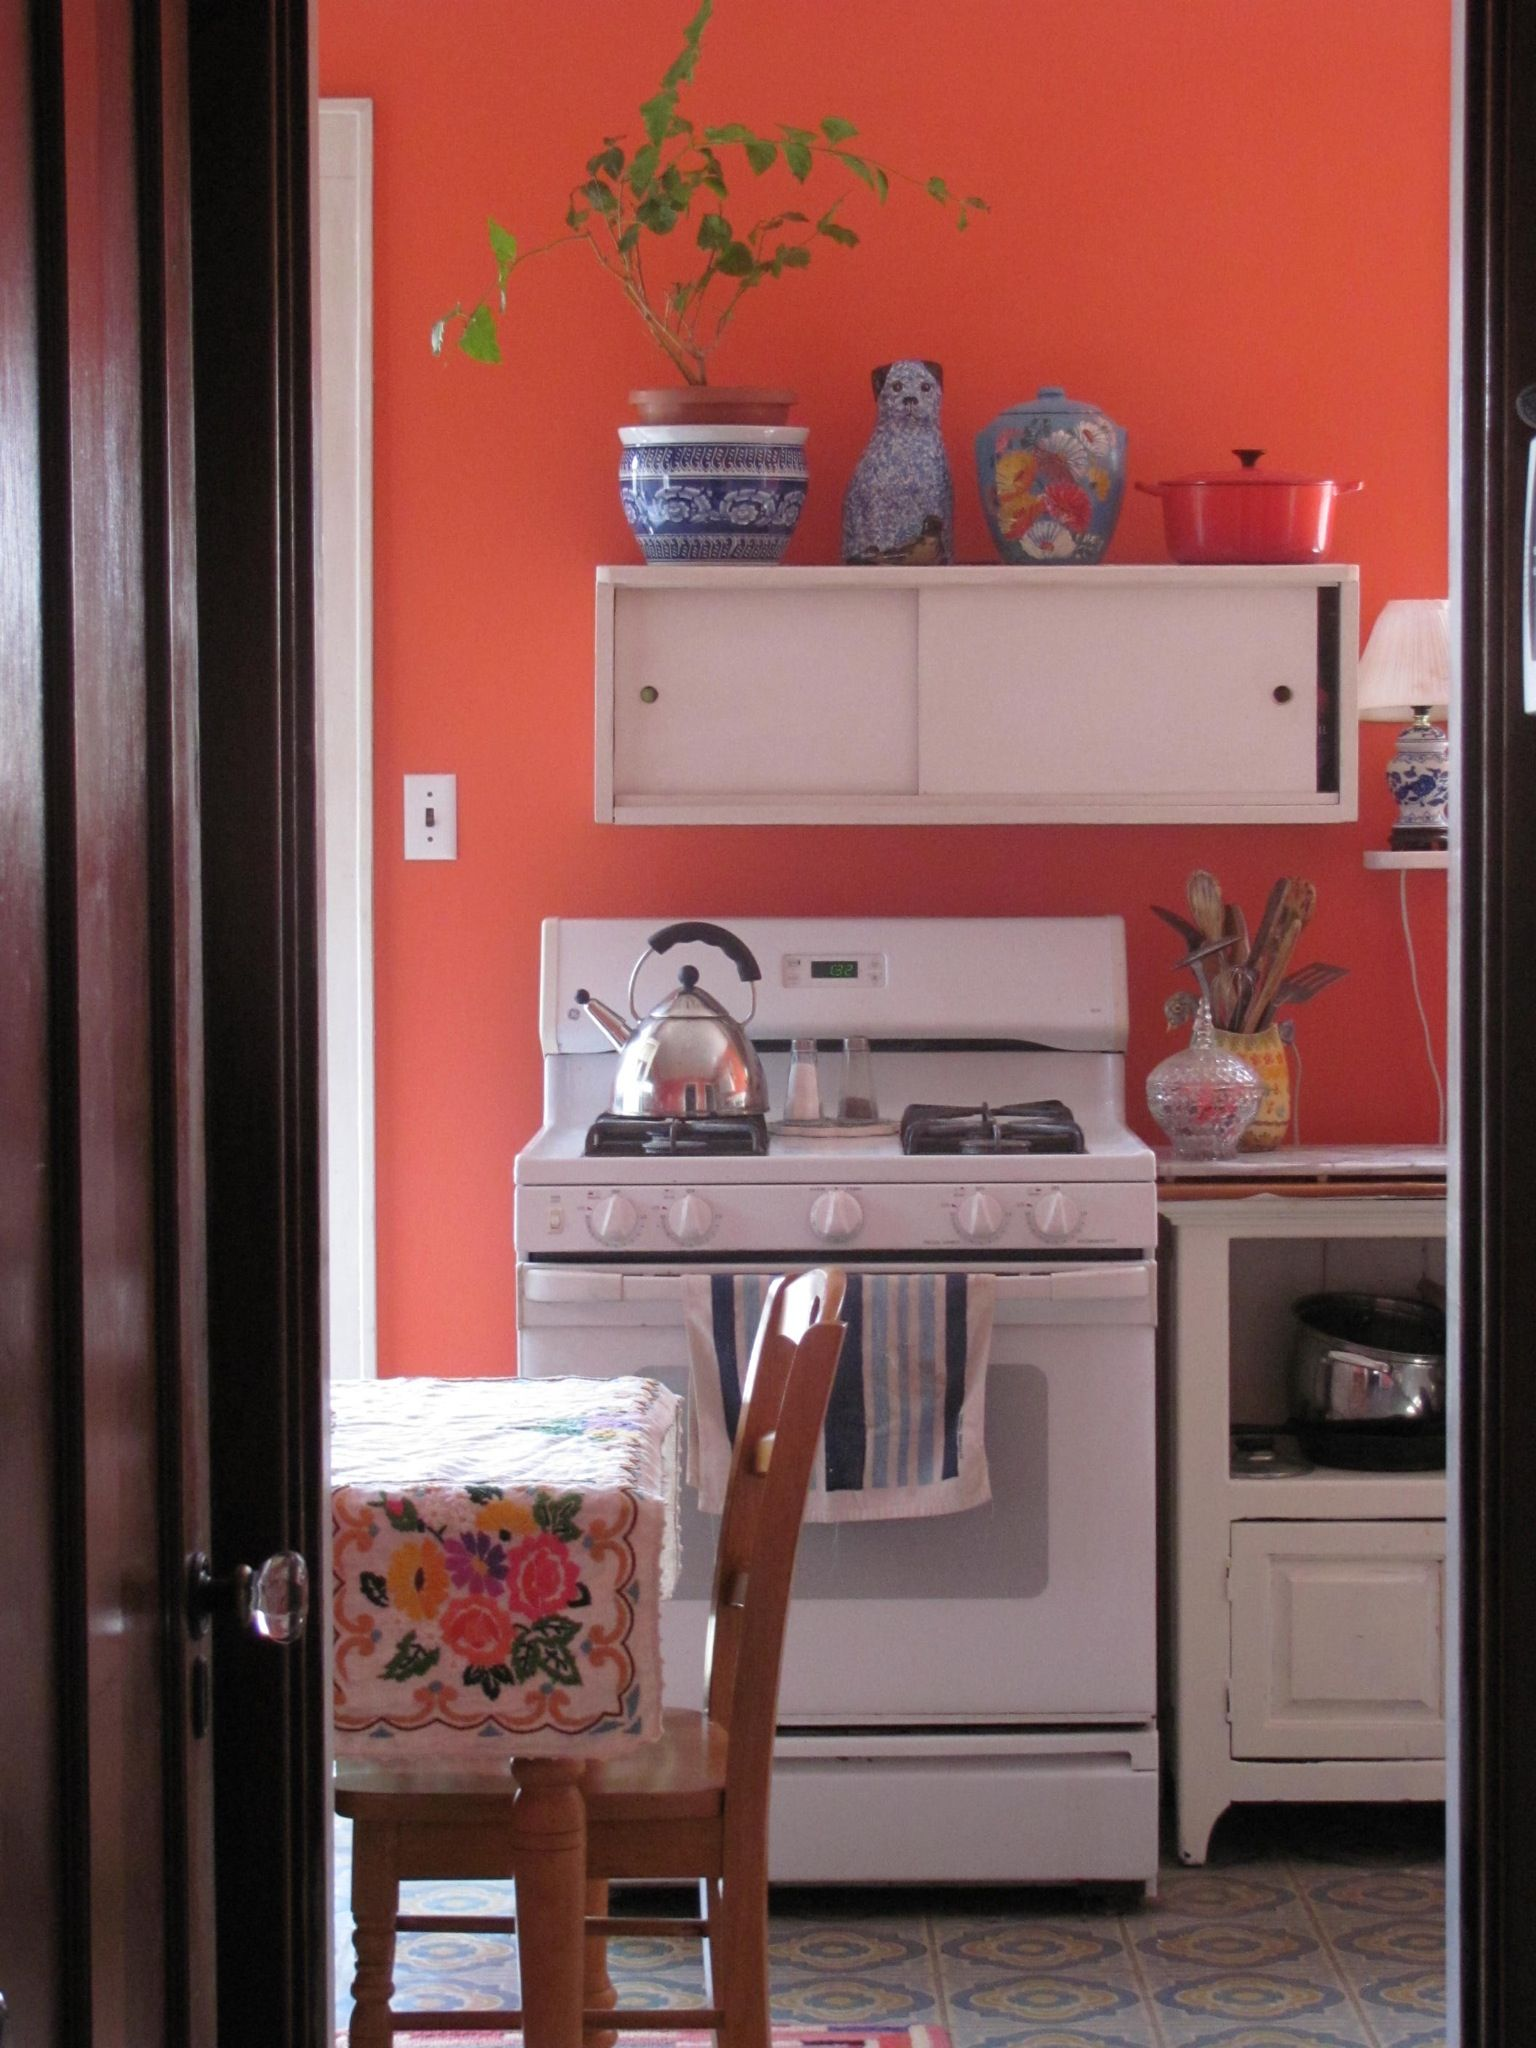 Pin By Katelyn Shea On House Kitchen Colour Schemes Coral Funky Home Decor